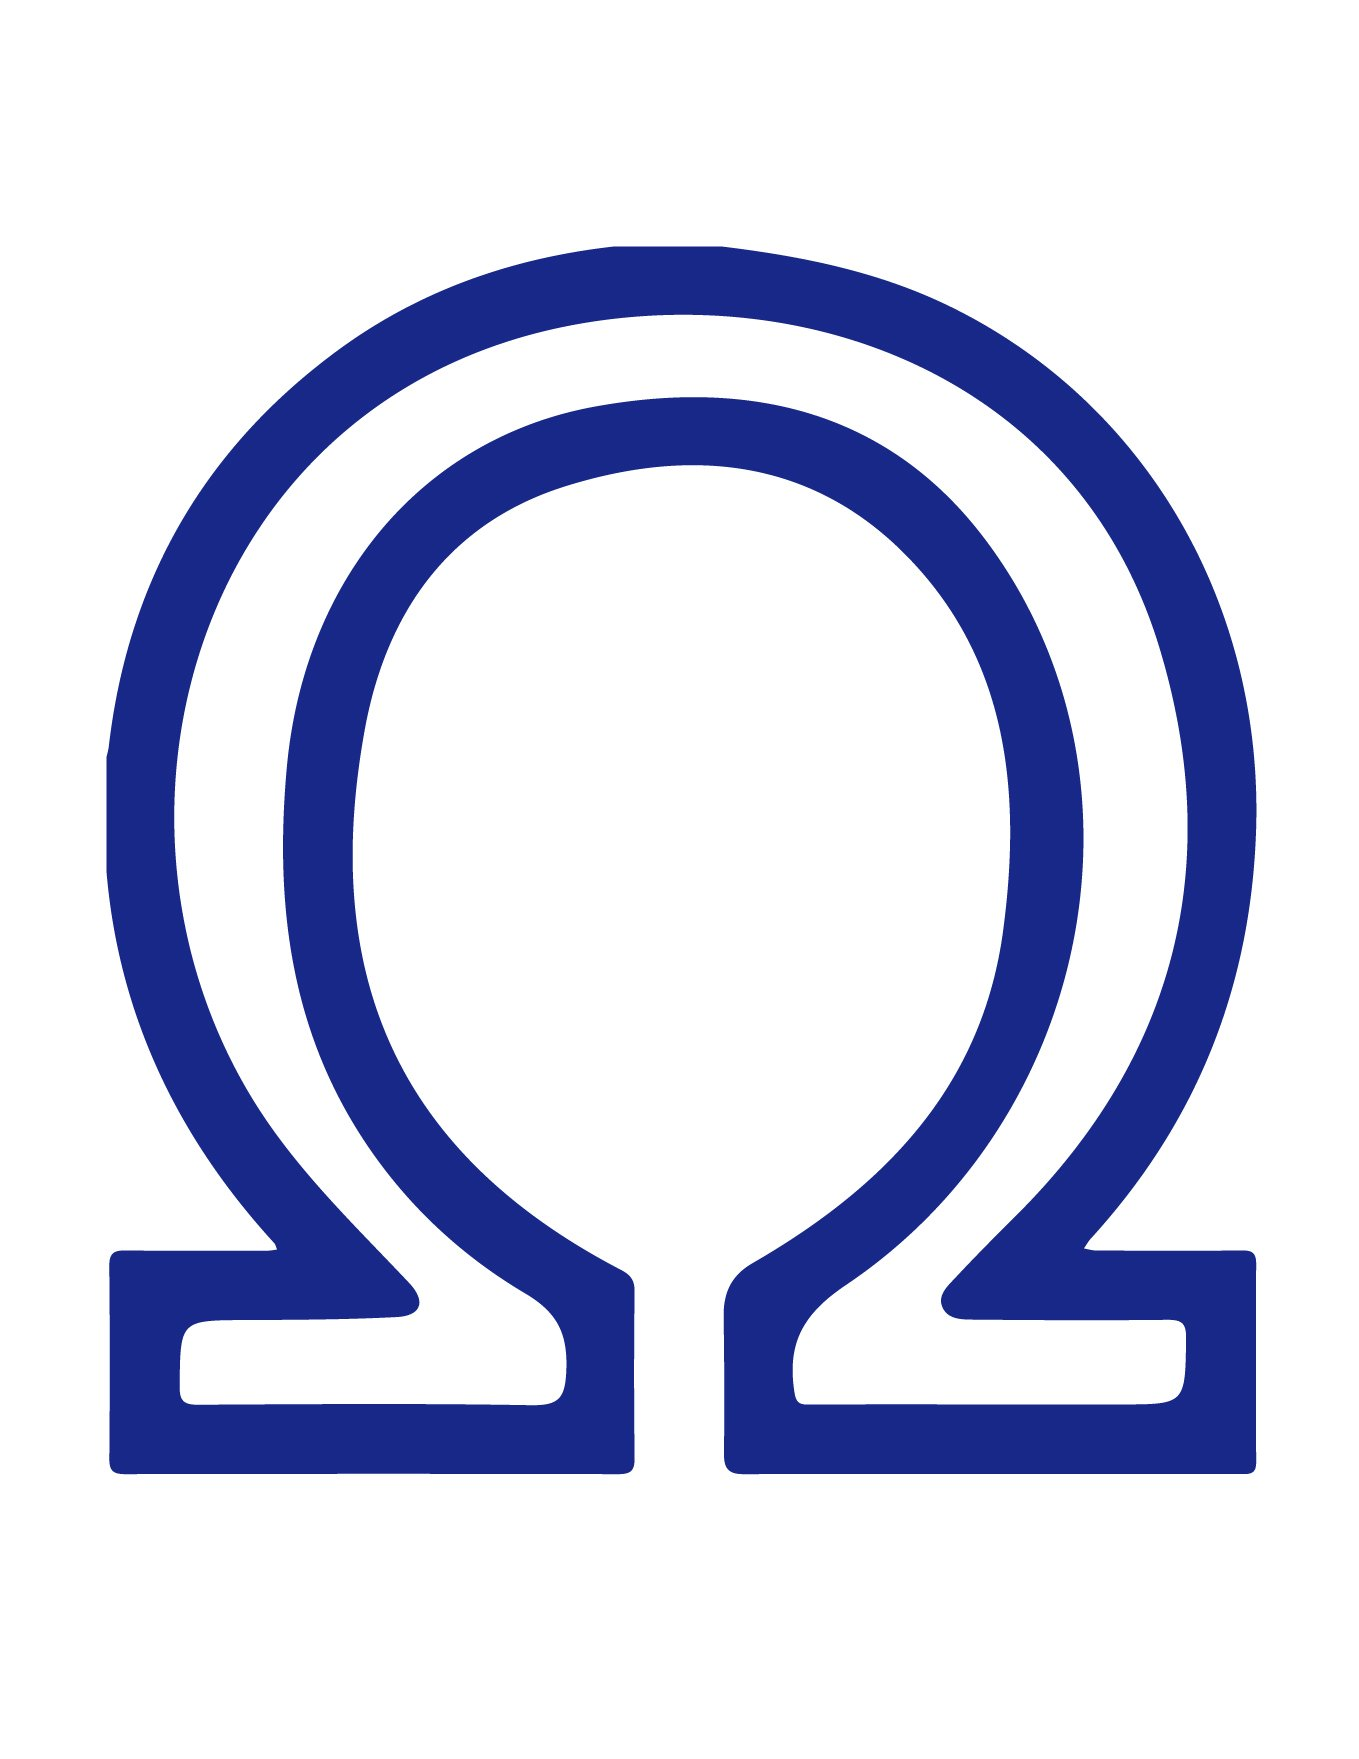 Omega Symbol/Sign and Its Meaning 4